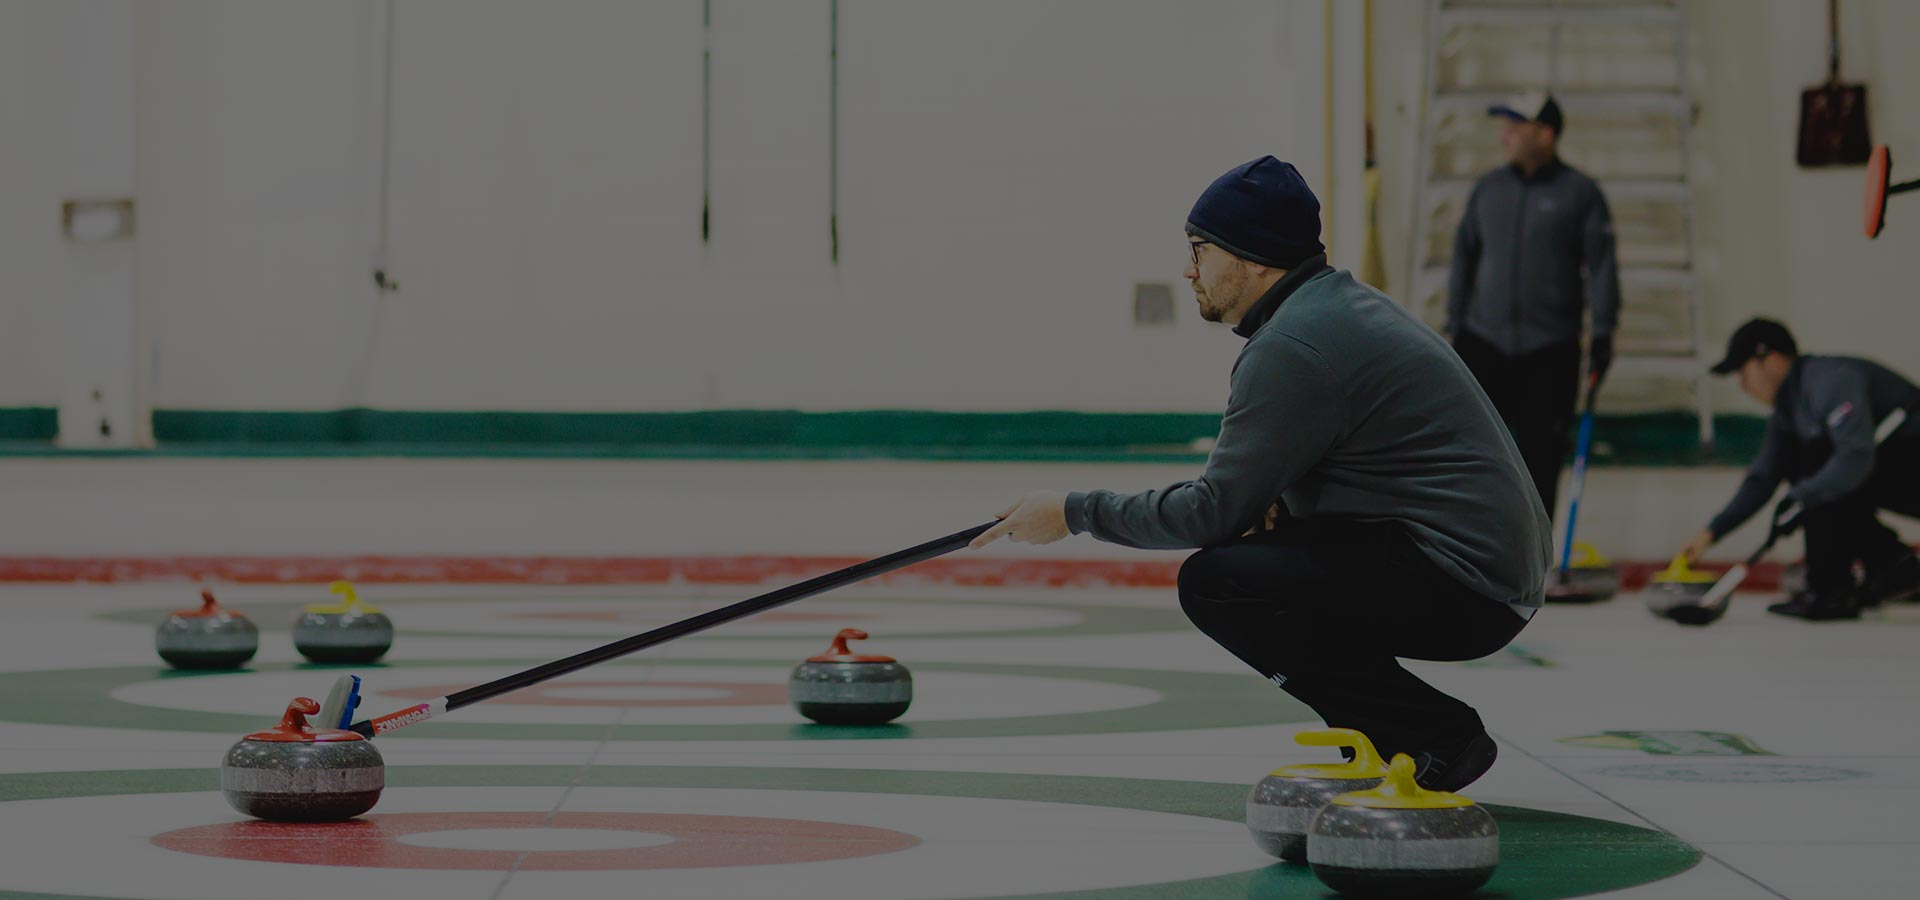 curling-leagues